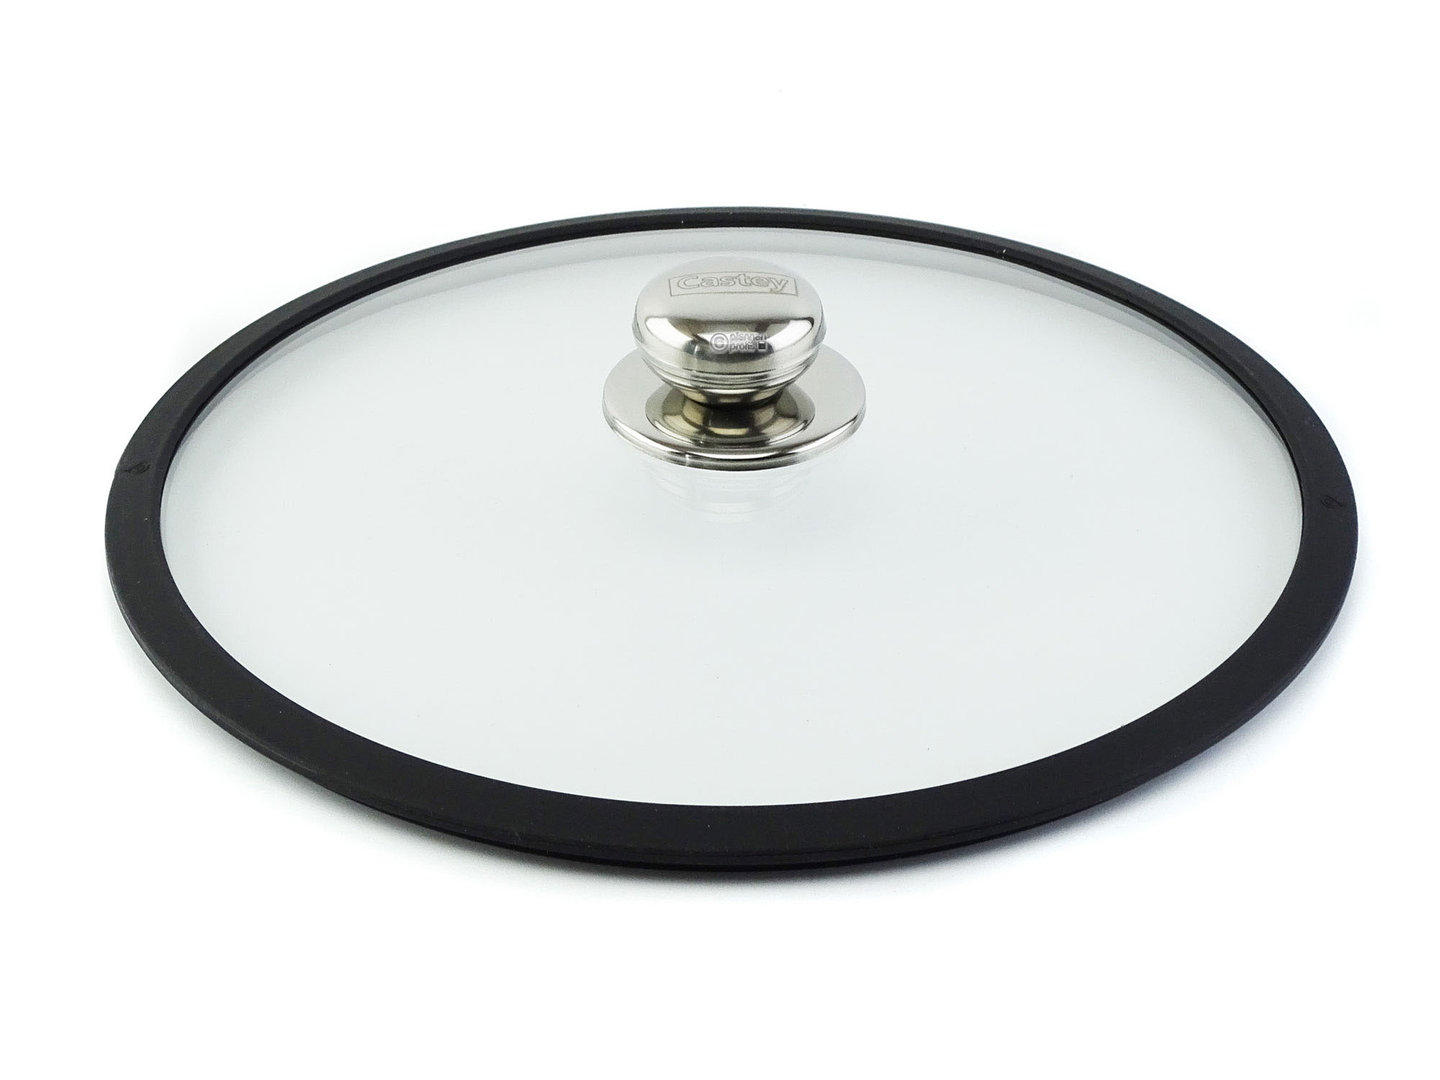 CASTEY ovenproof glass lid 30 cm with silicone rim